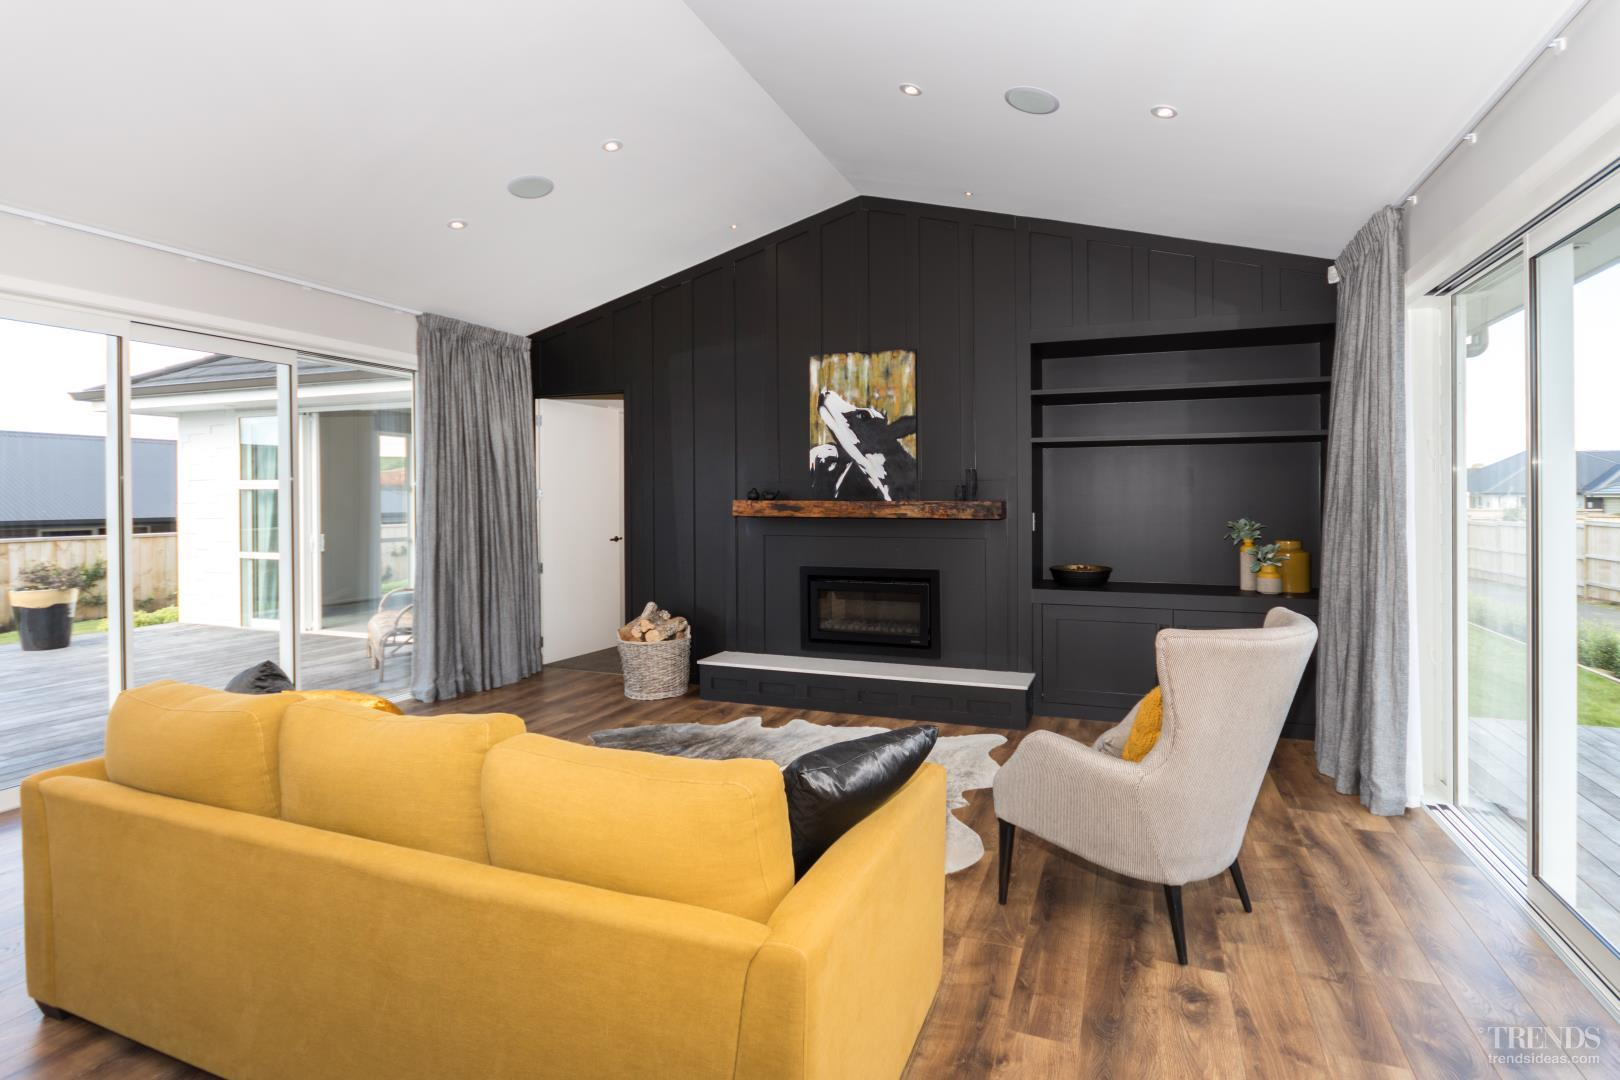 an inky black feature wall adds a dramatic touch to the ligh